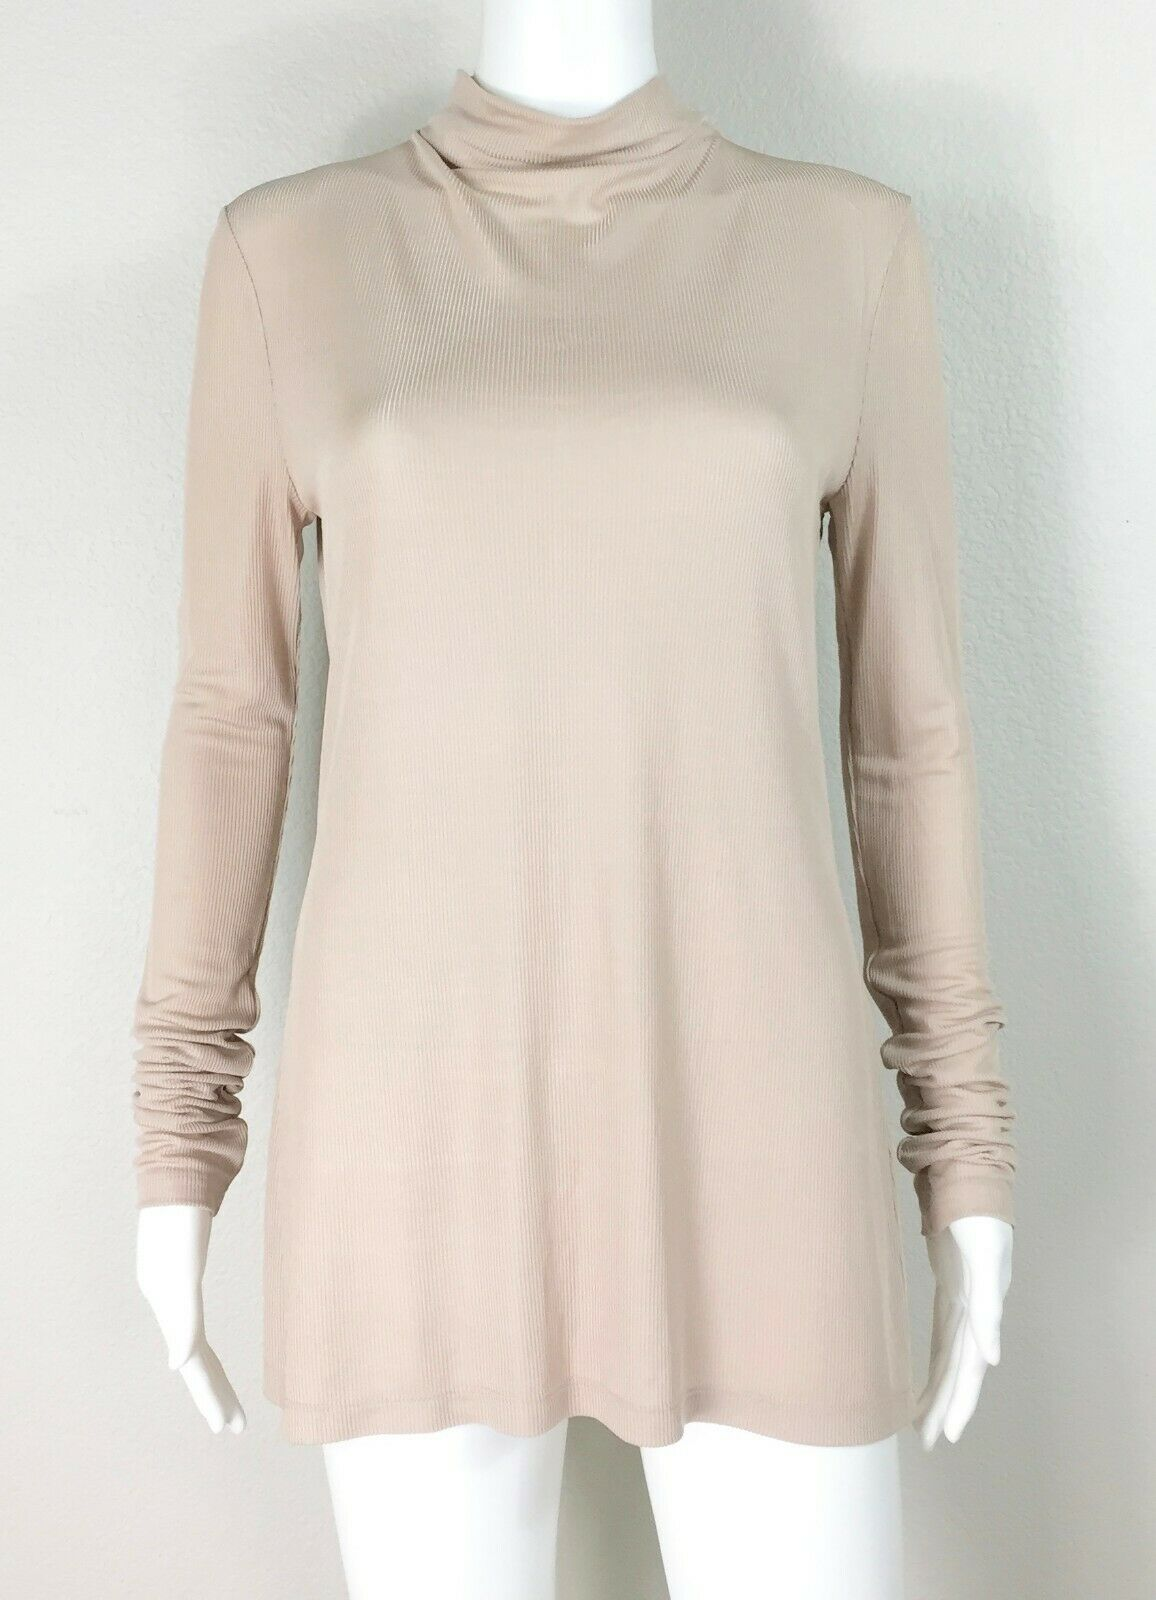 MM LAFLEUR The Keaton Turtleneck Top Long Sleeve Buttermilk Größe Medium - NTSF